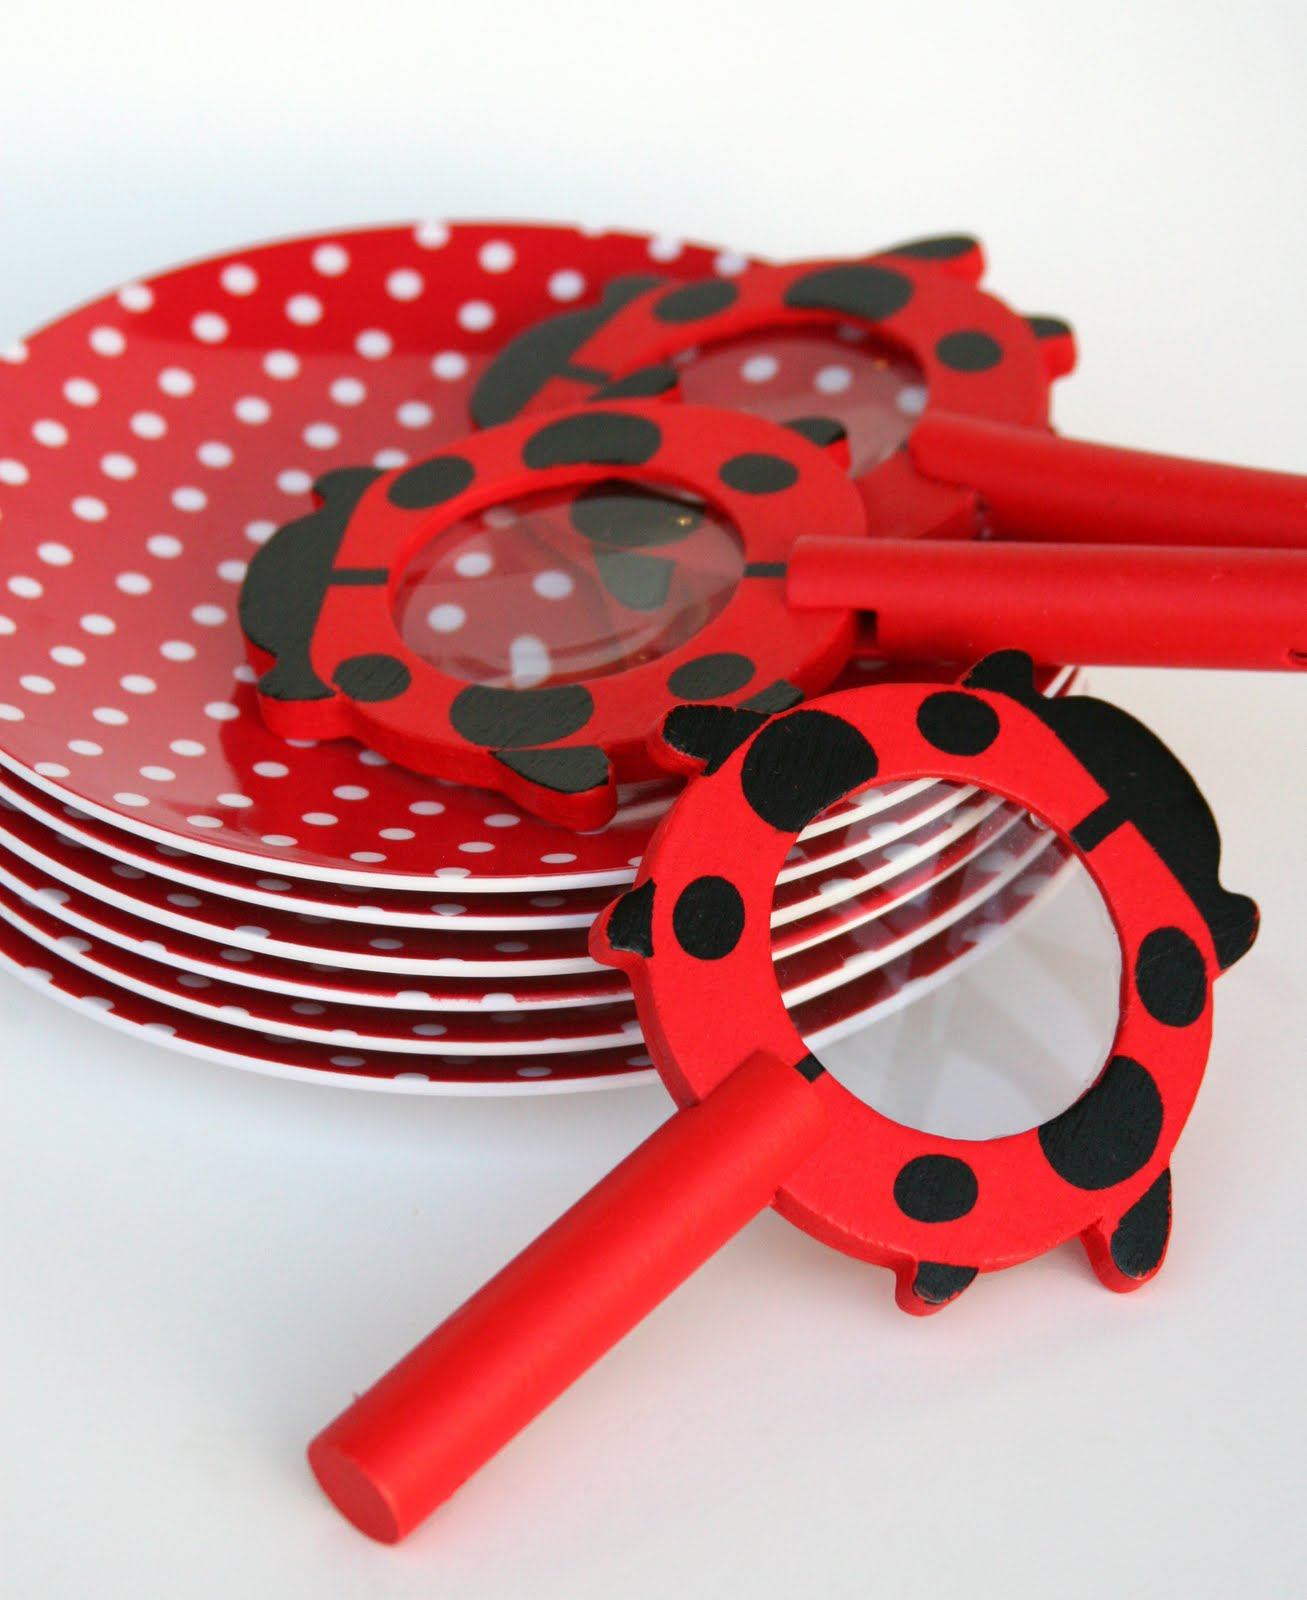 Polka Dot Plastic Plates & Hot Pink And White Polka Dot